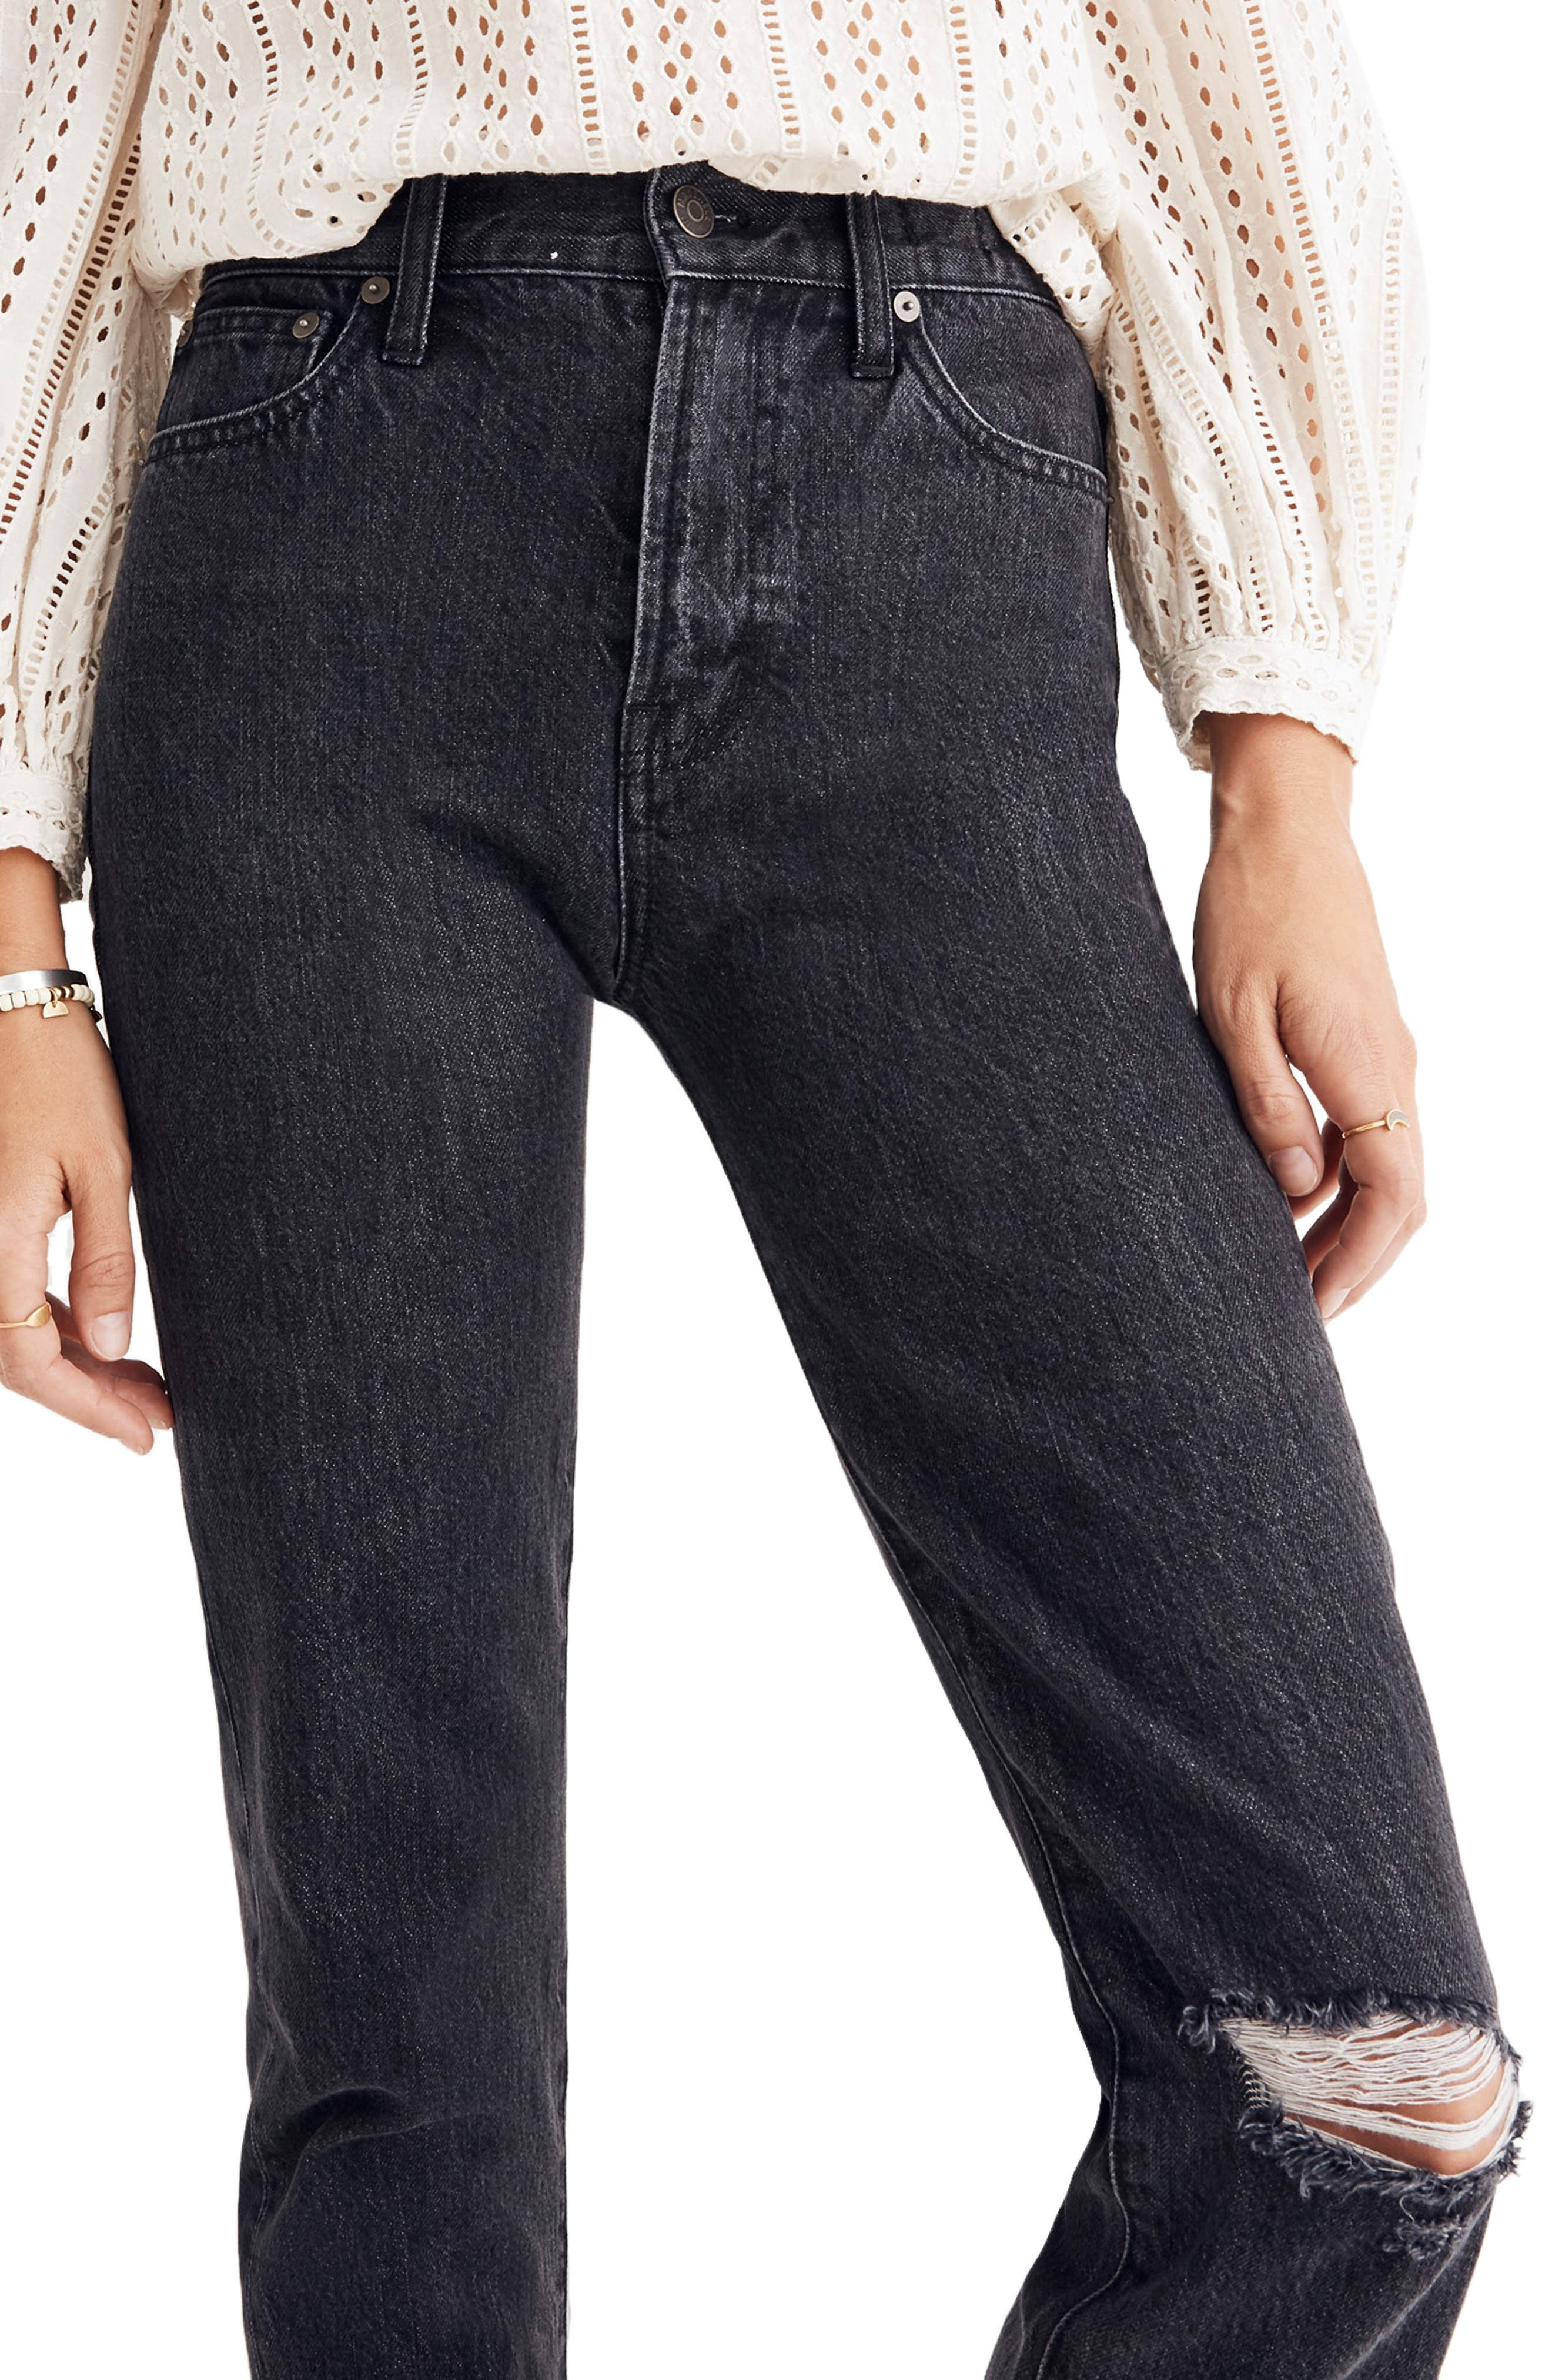 MADEWELL The Perfect Vintage Ripped Knee Jeans, Main, color, ROXSTONE